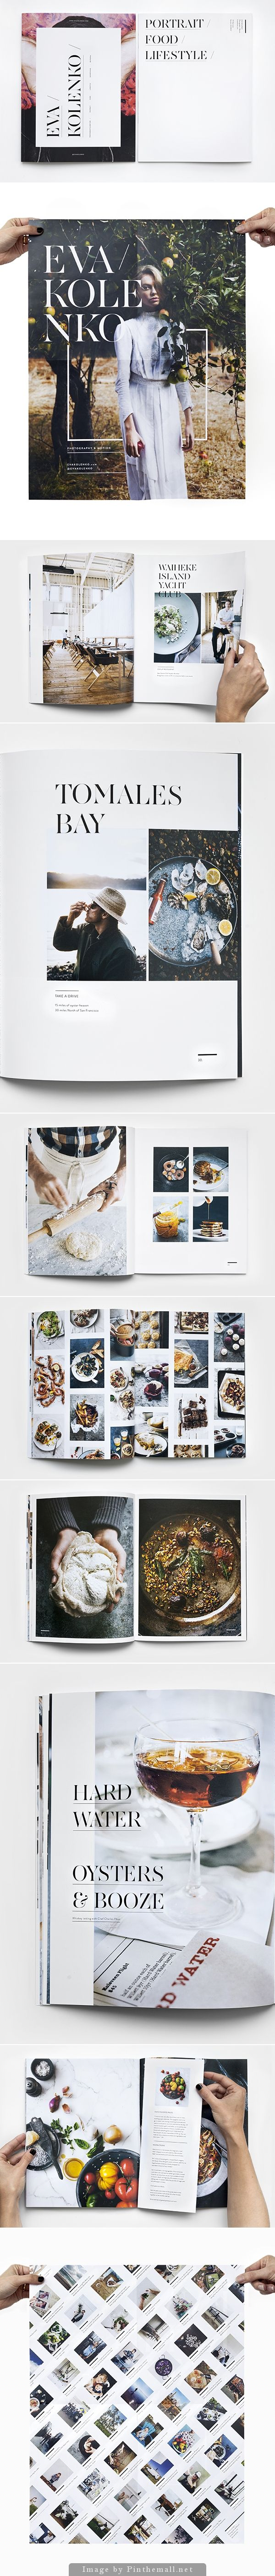 I love the page on the top right here. Would be cool to do as first page you see when you open the mag. Saying FOOD ENTERTAINING COMMUNITY